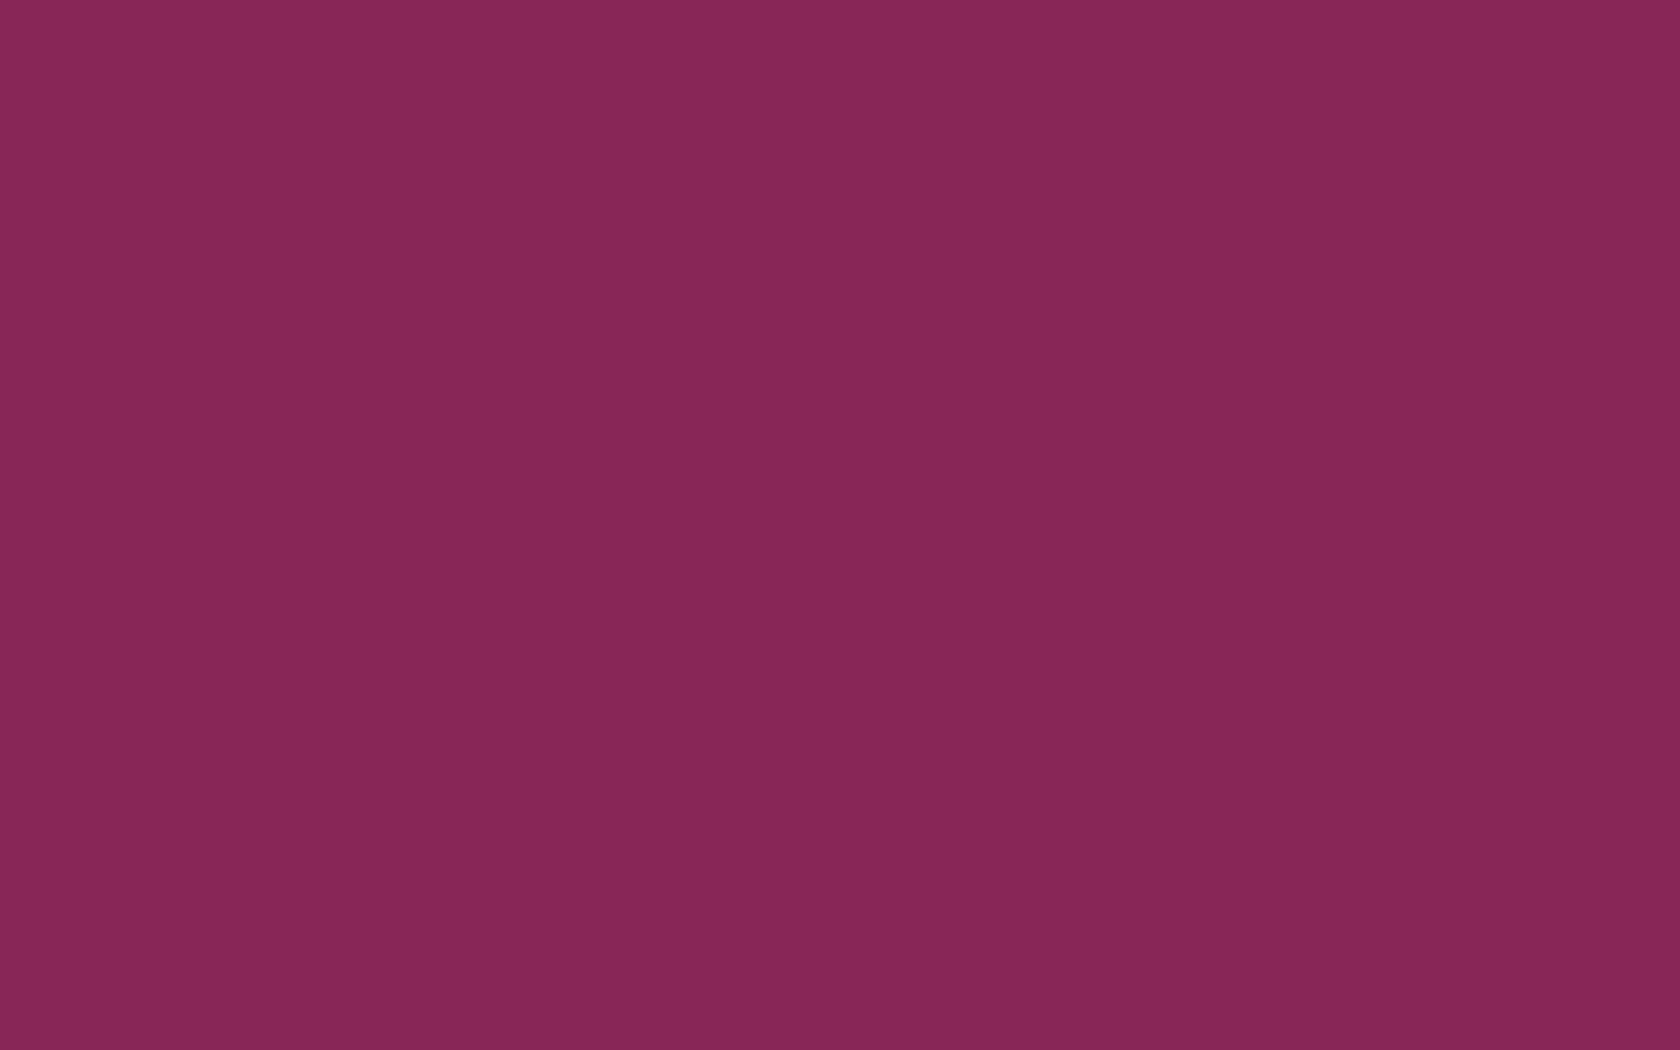 1680x1050 Dark Raspberry Solid Color Background